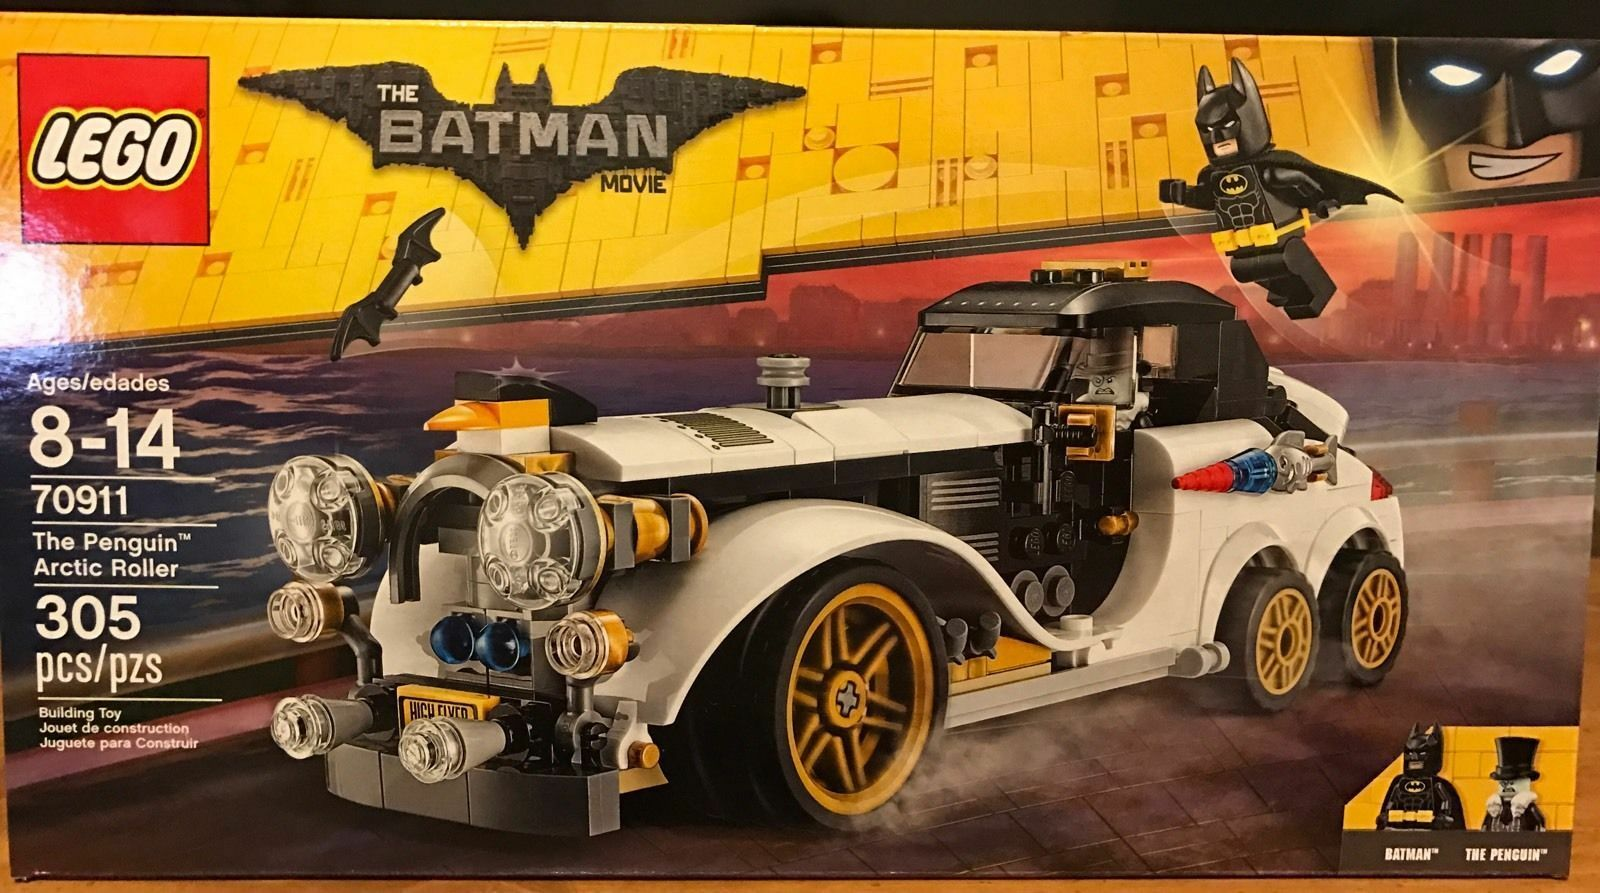 LEGO 70911 The Batman Movie The Penguin Arctic Roller  In Hand  New  2017